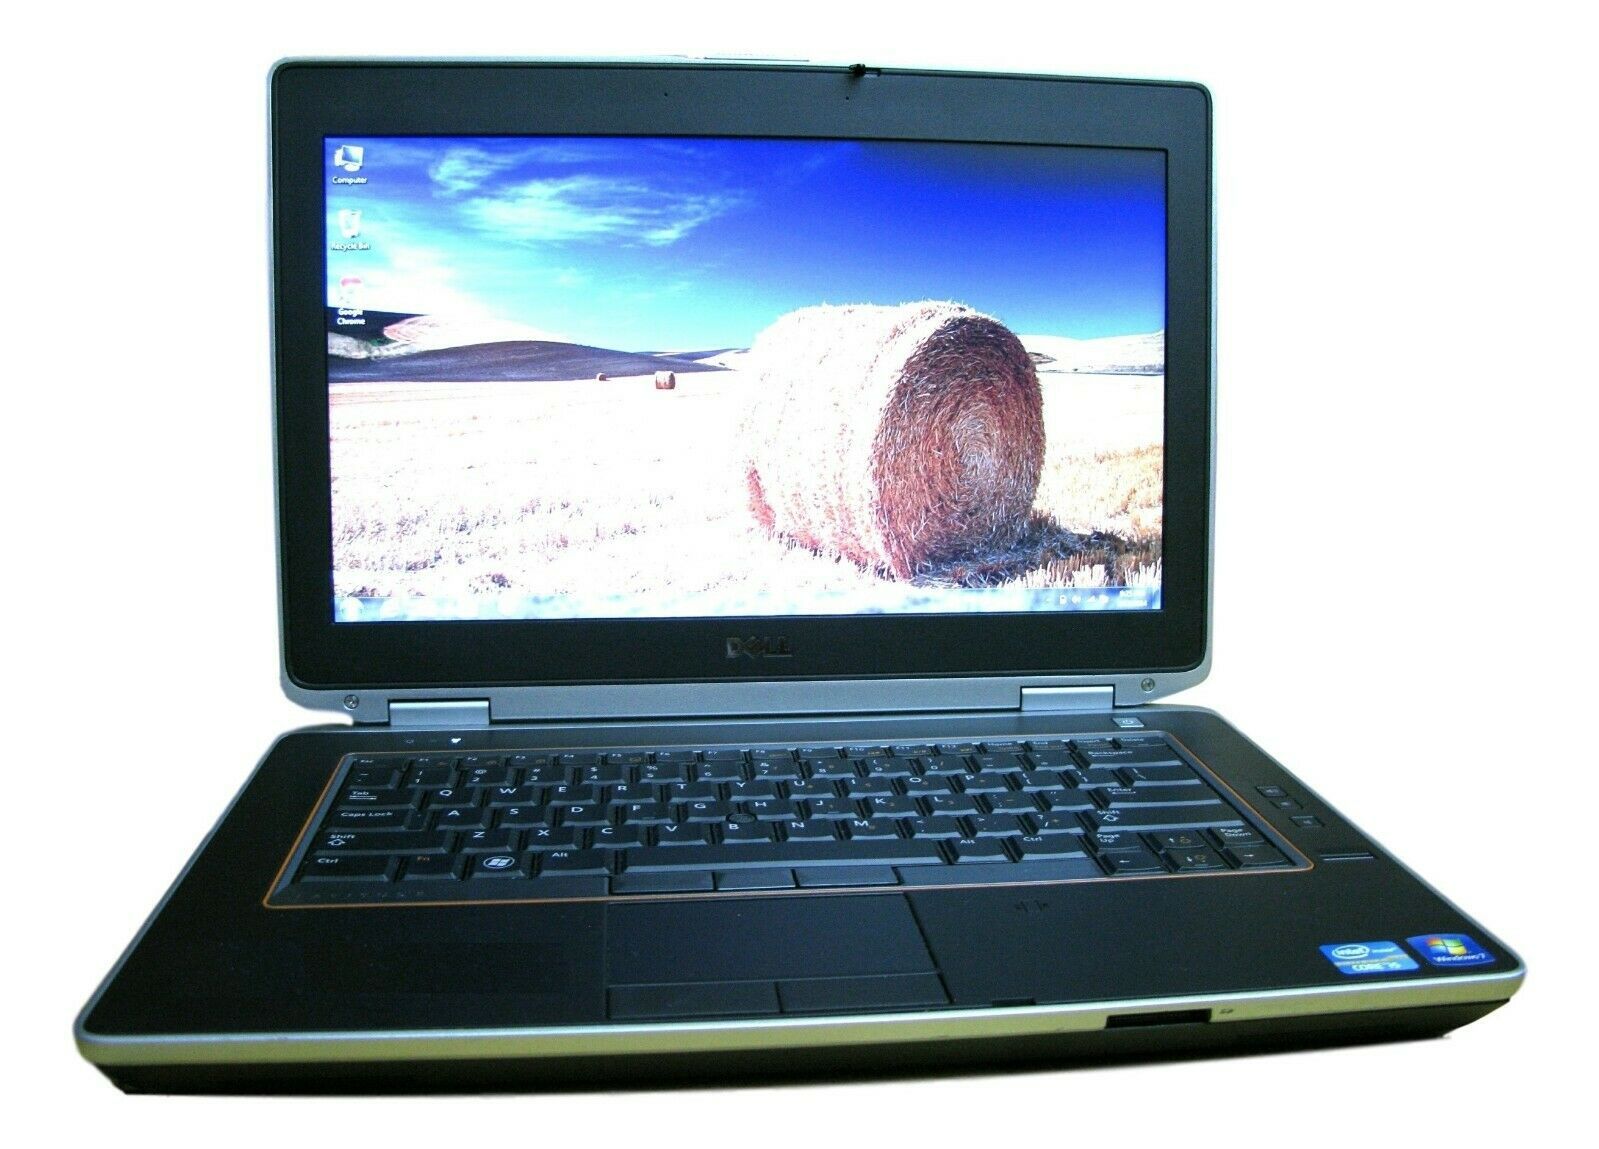 Laptop Windows - Dell Latitude Laptop Windows 7 8GB SUPER FAST 480GB SSD / 3 YEAR WARRANTY